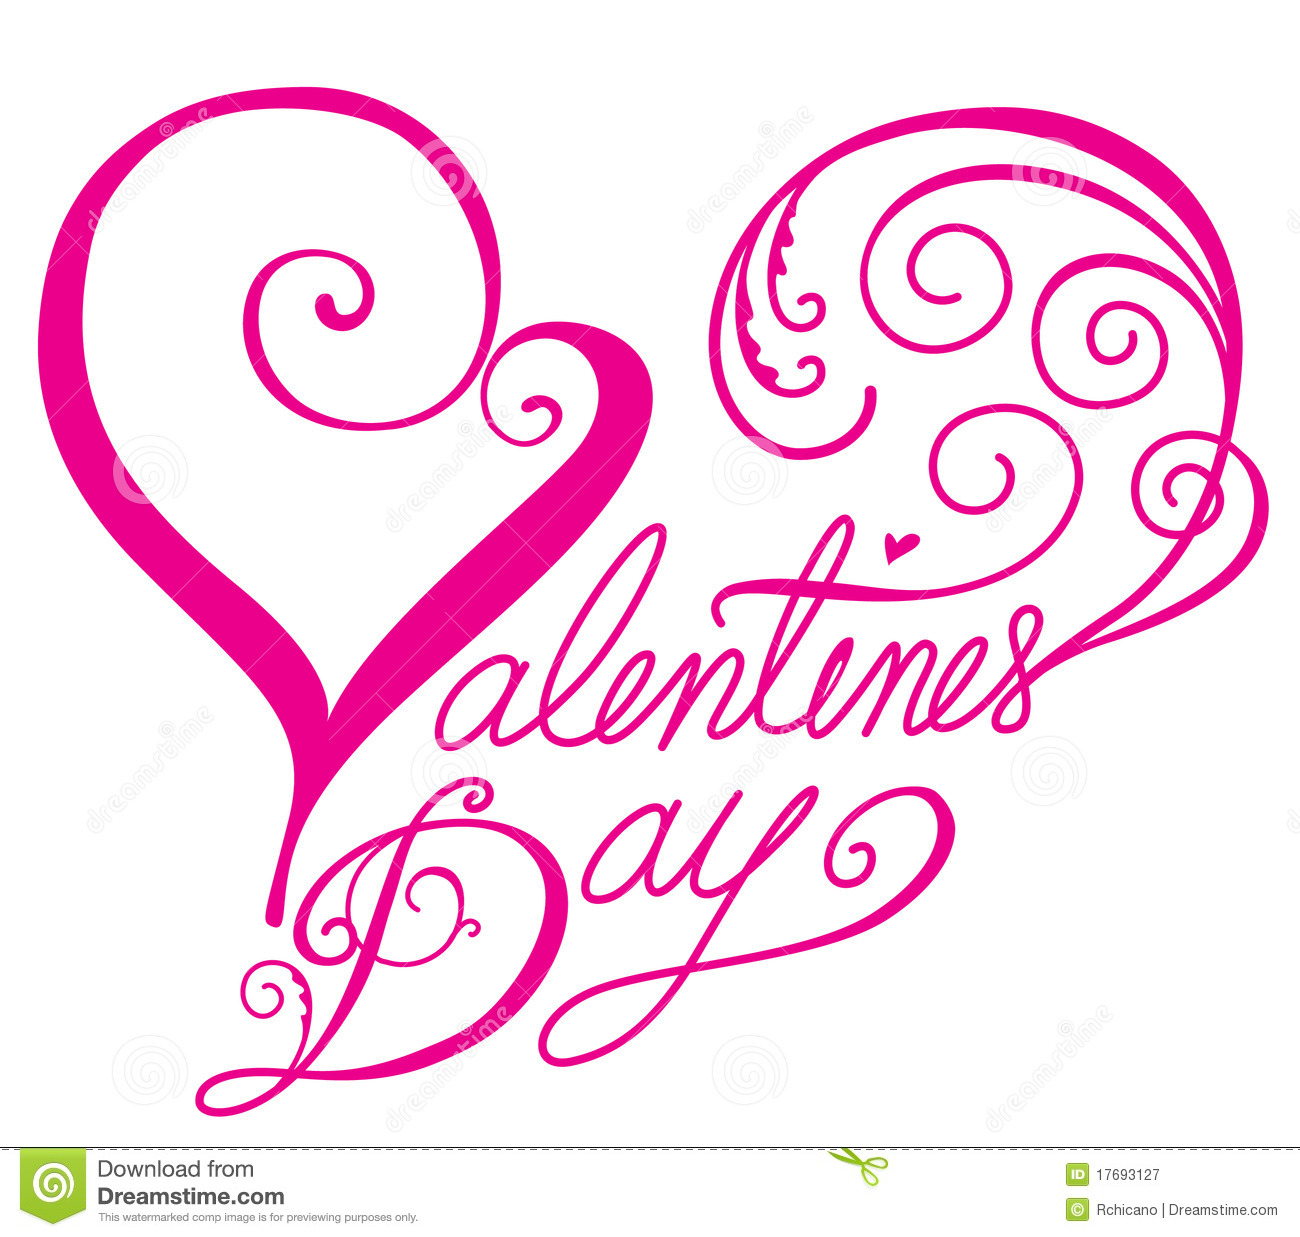 Valentines Day Font In Heart Shape Stock Vector - Image: 17693127